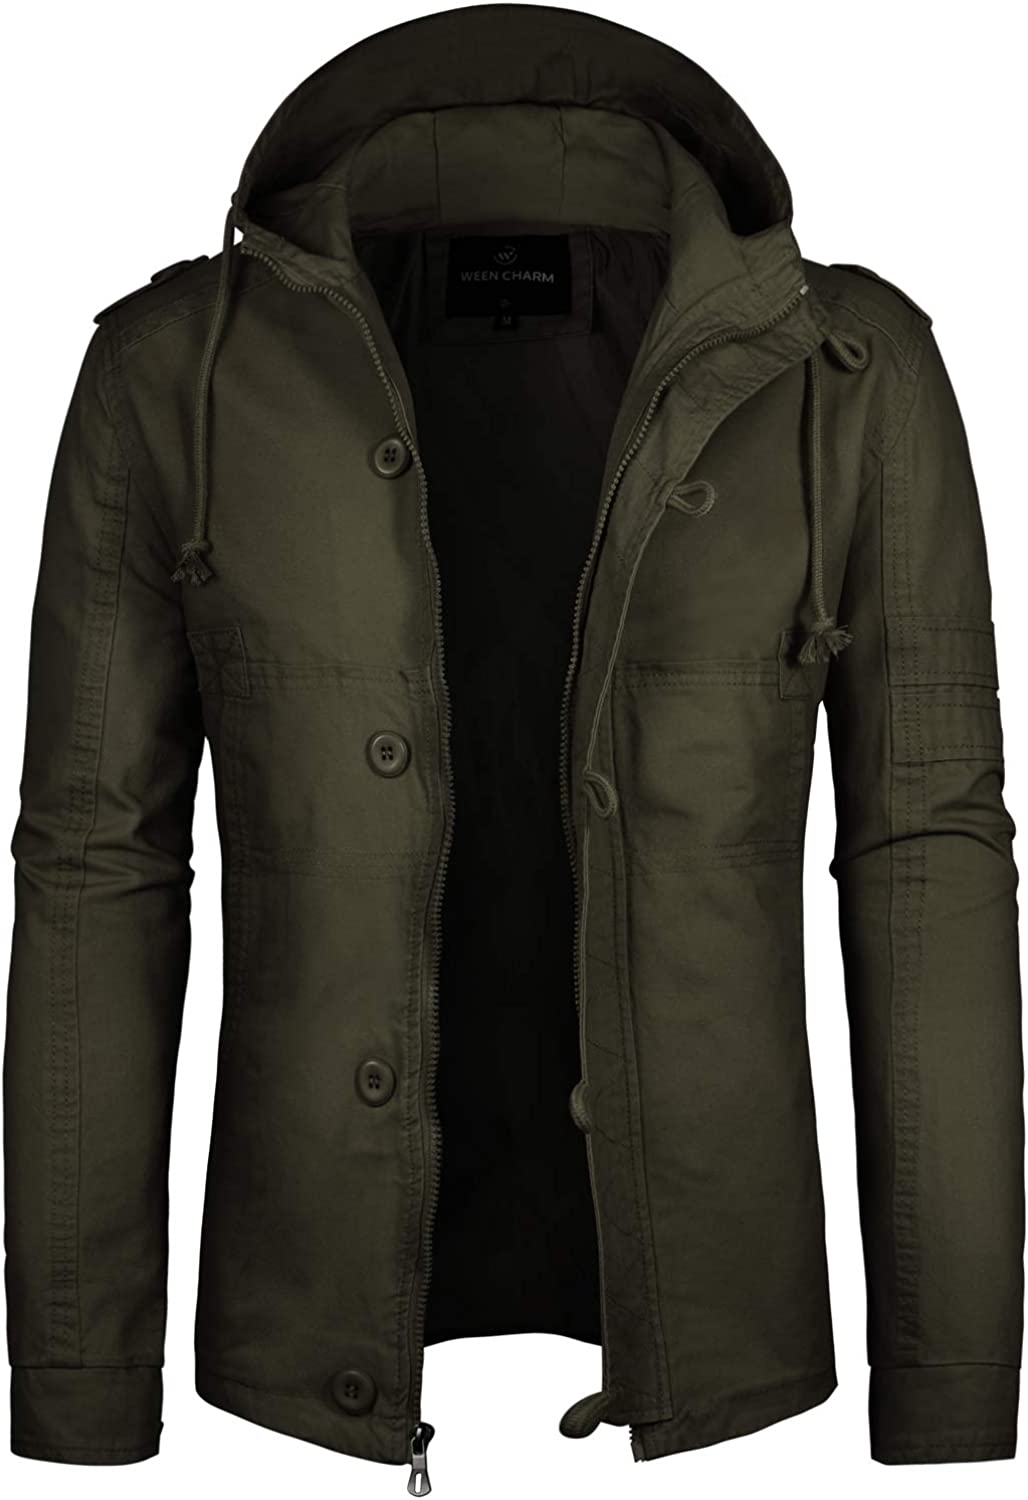 Mens Military Army Field Jacket Lightweight Canvas Cotton Windbreaker Anorak Coat with Hood